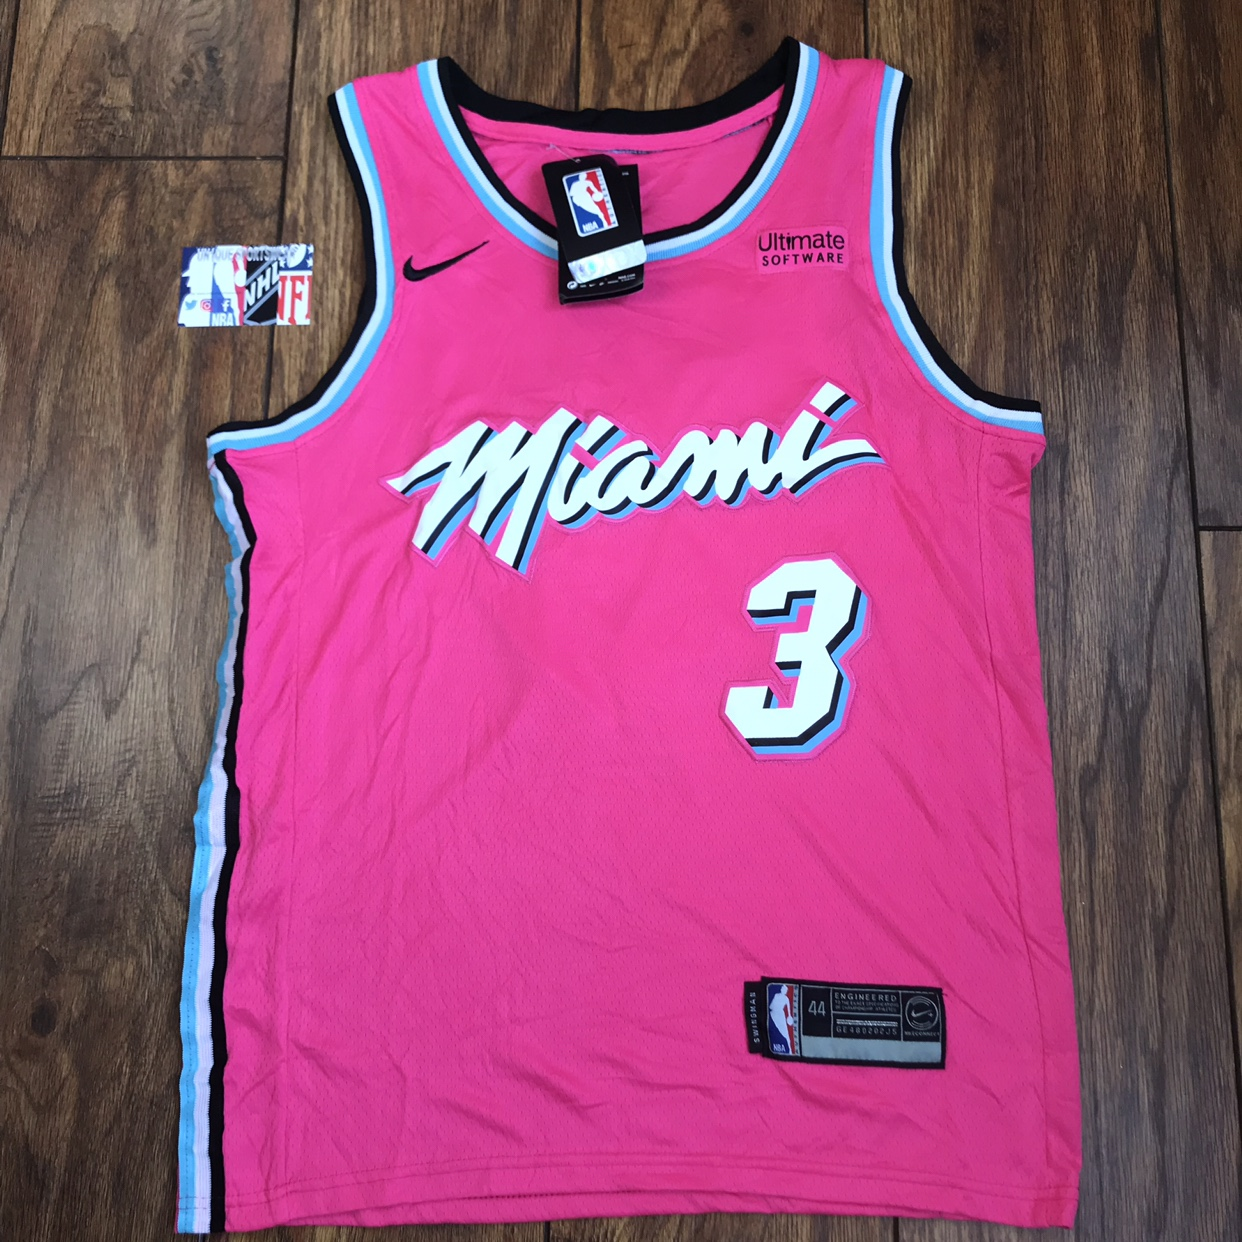 competitive price 2dfb2 5d20d Dwyane Wade Miami Heat pink Nba stitched jersey new ...